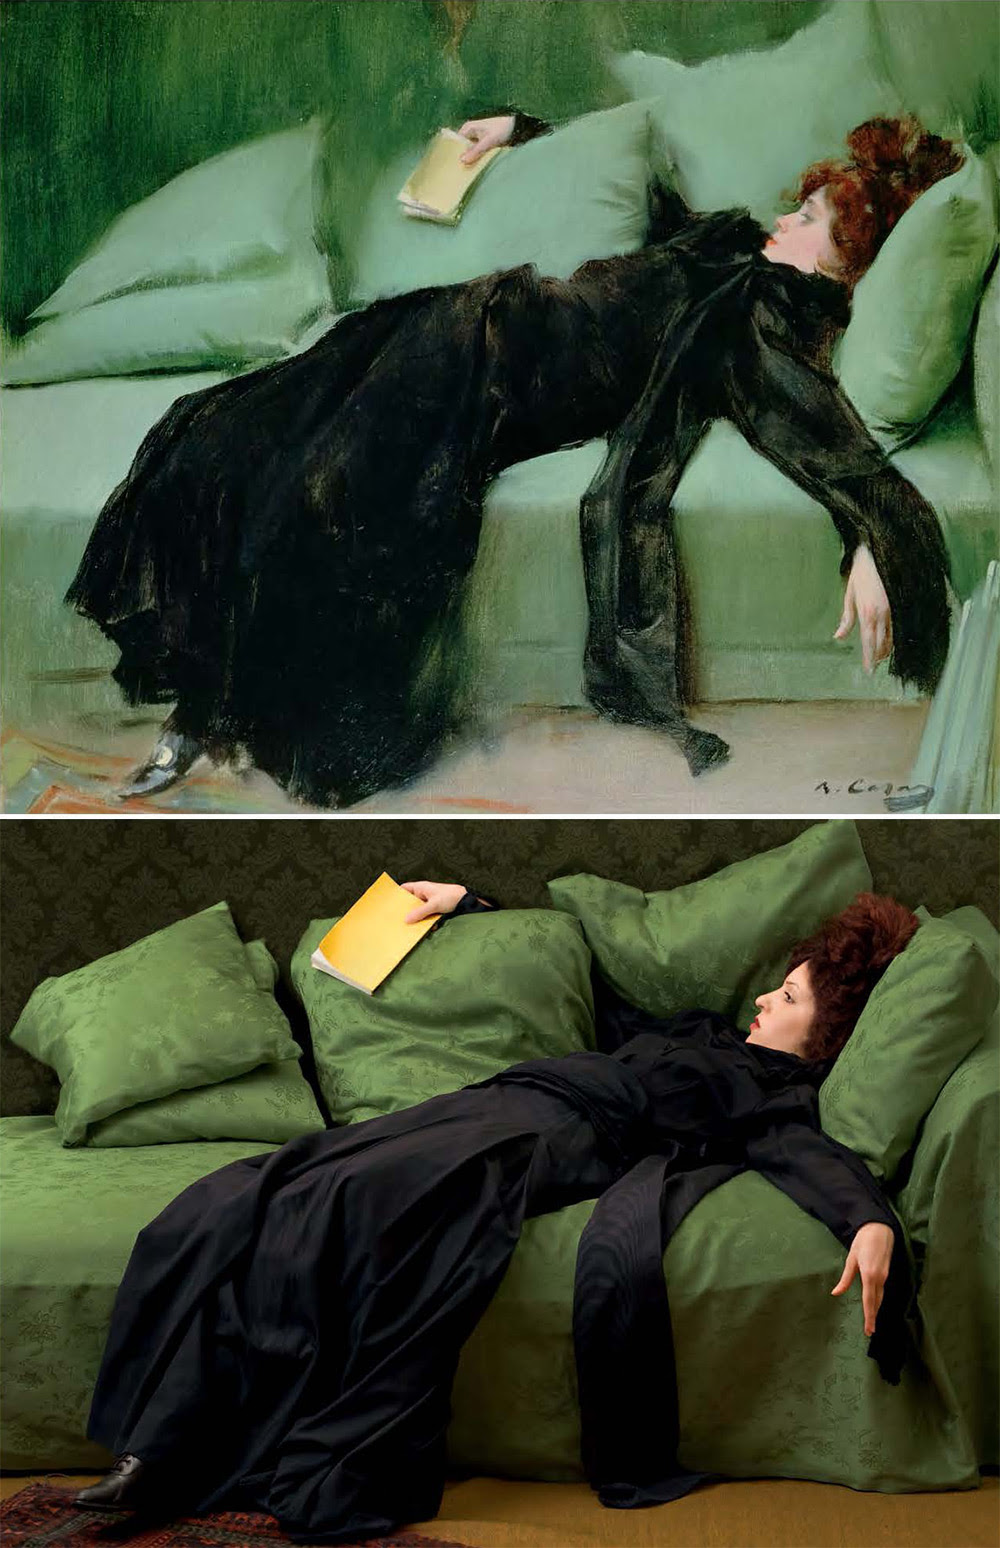 """Ramon Casas i Carbo, """"After the Ball,"""" 1895, oil on canvas, remake by Tania Brassesco and Lazlo Passi Norberto"""